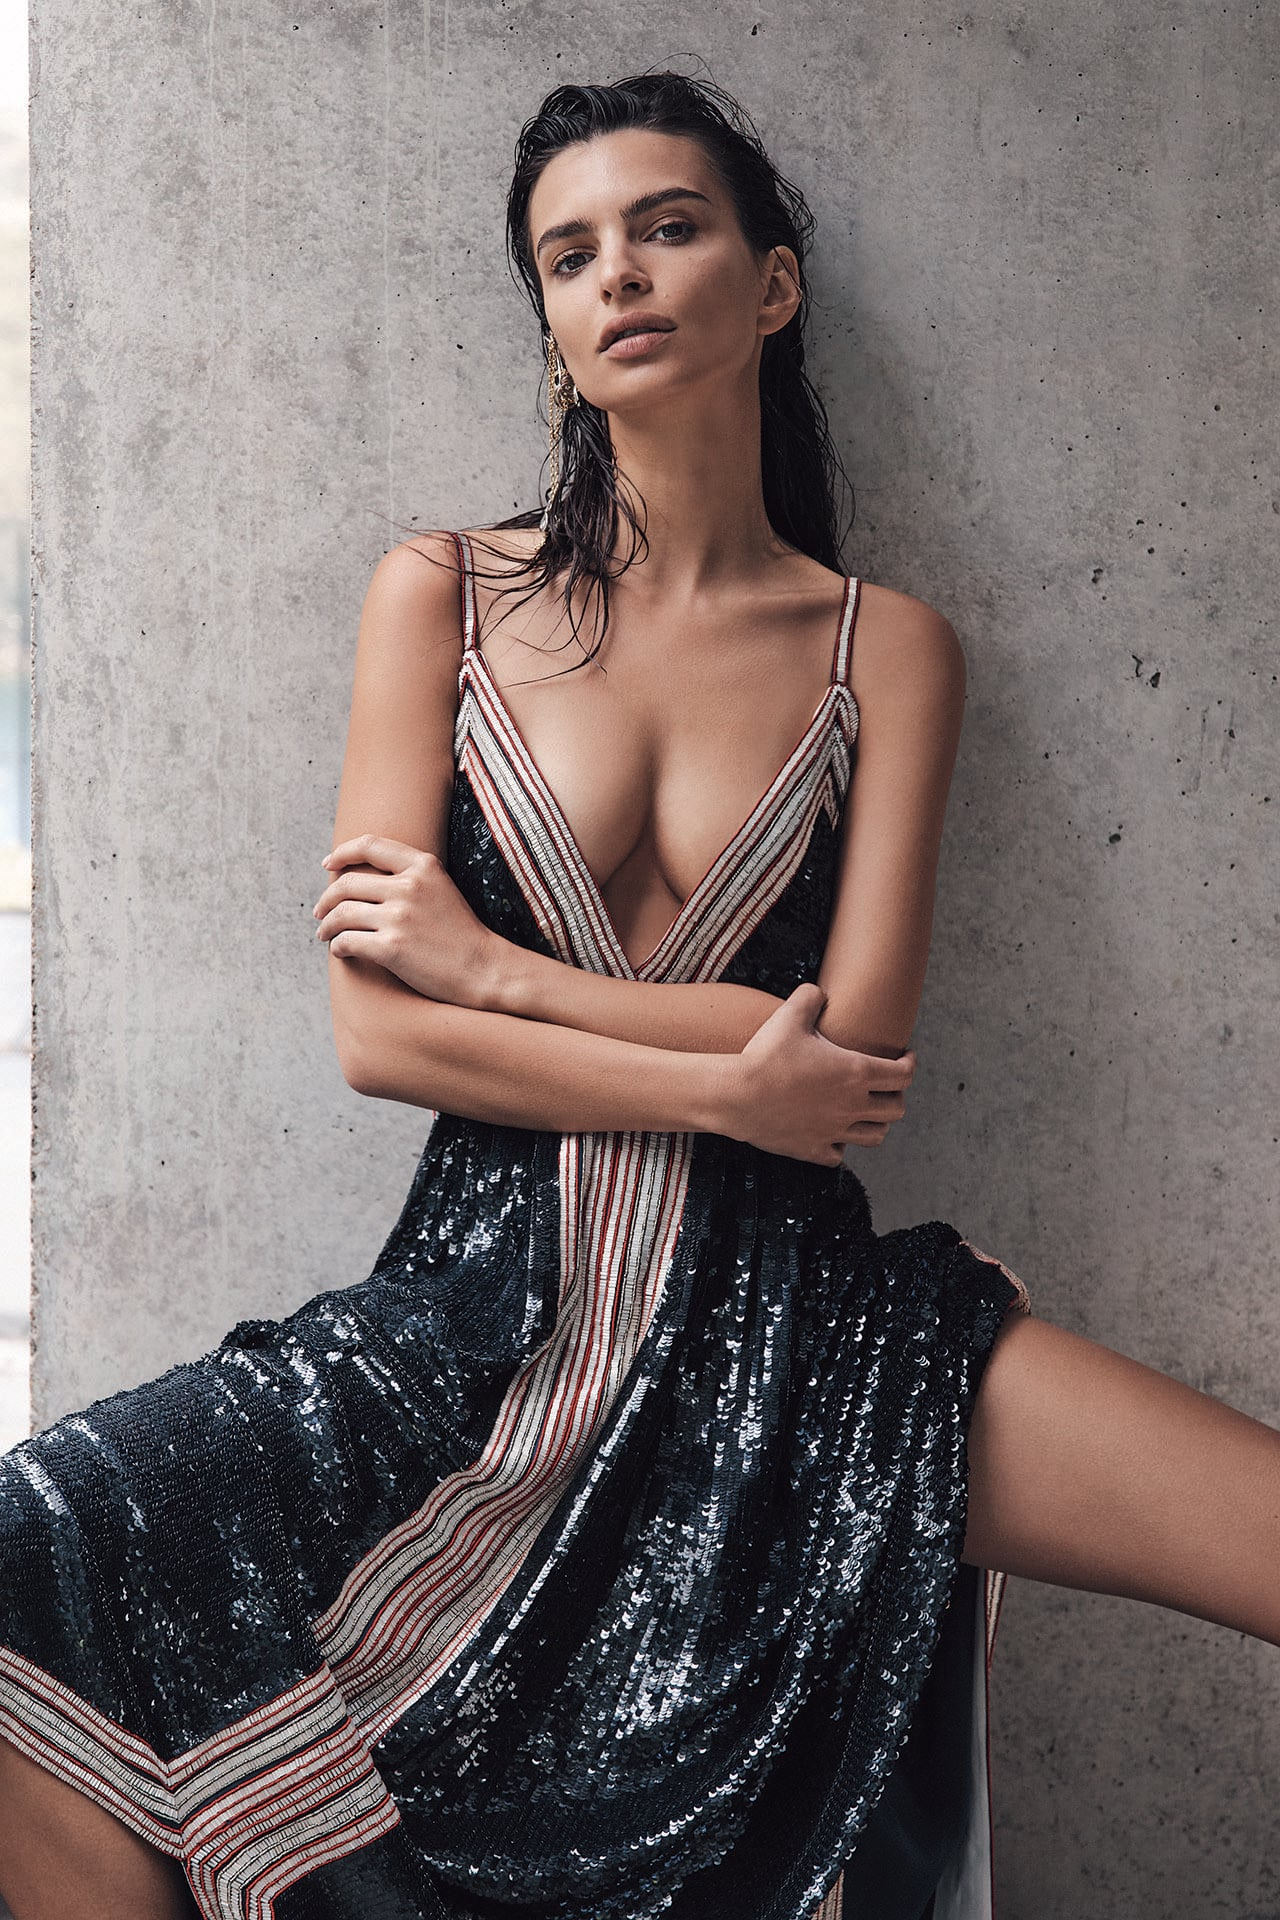 Emily Ratajkowski's Net Worth, Husband, TV Shows, Movies And Career 6